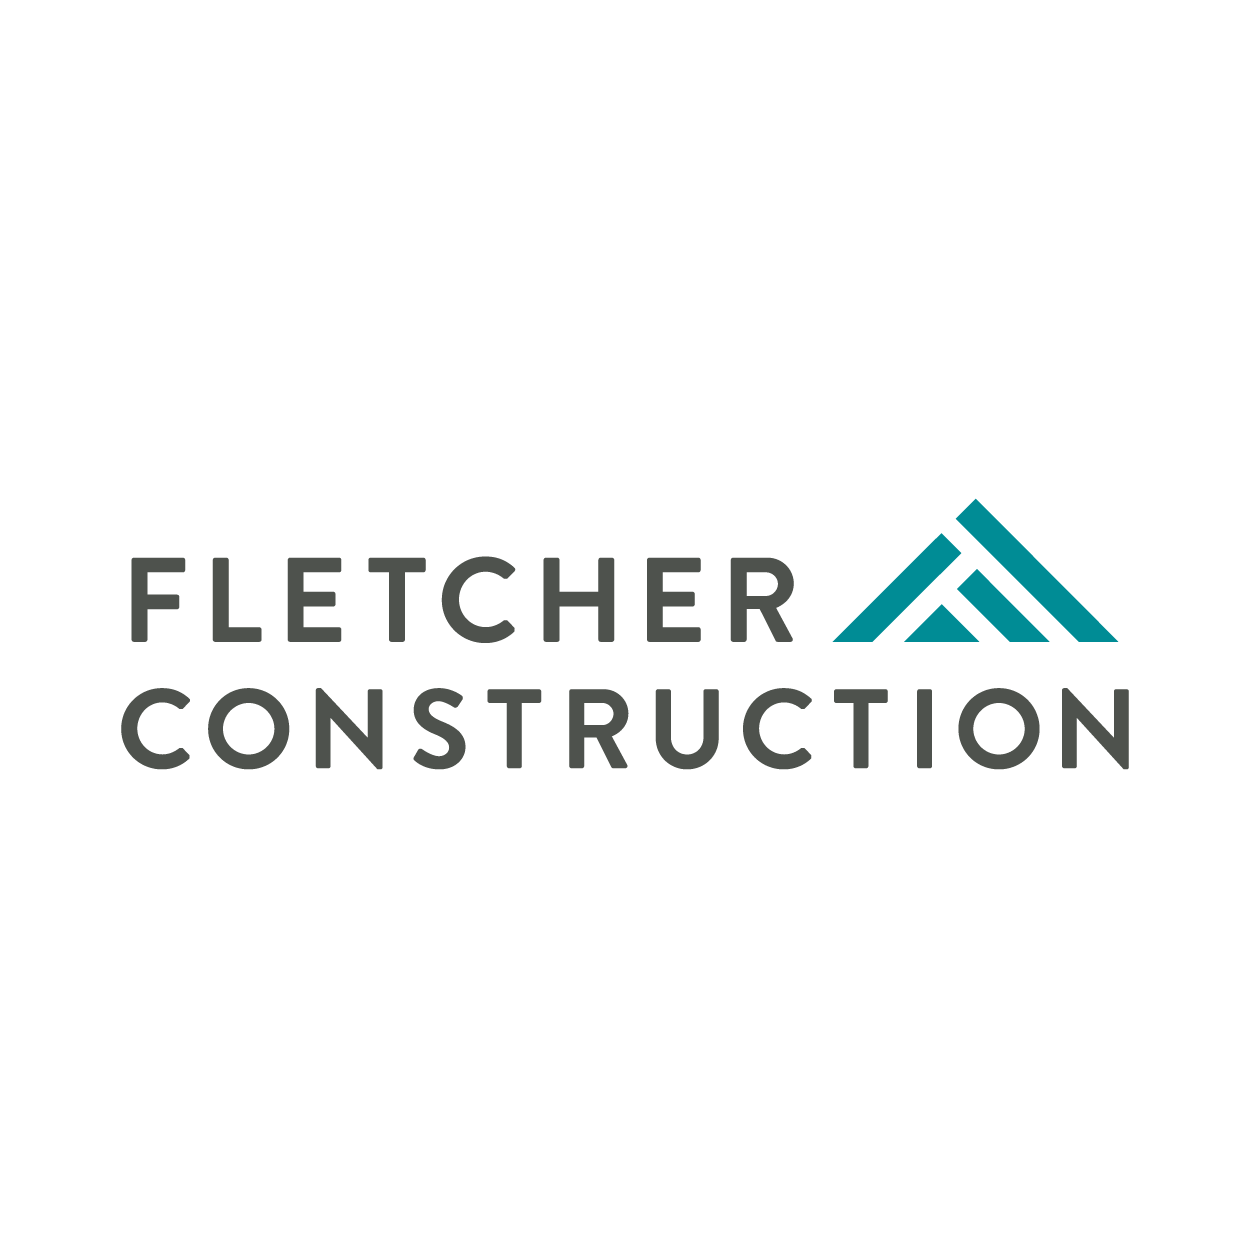 Copy of Fletcher Construction